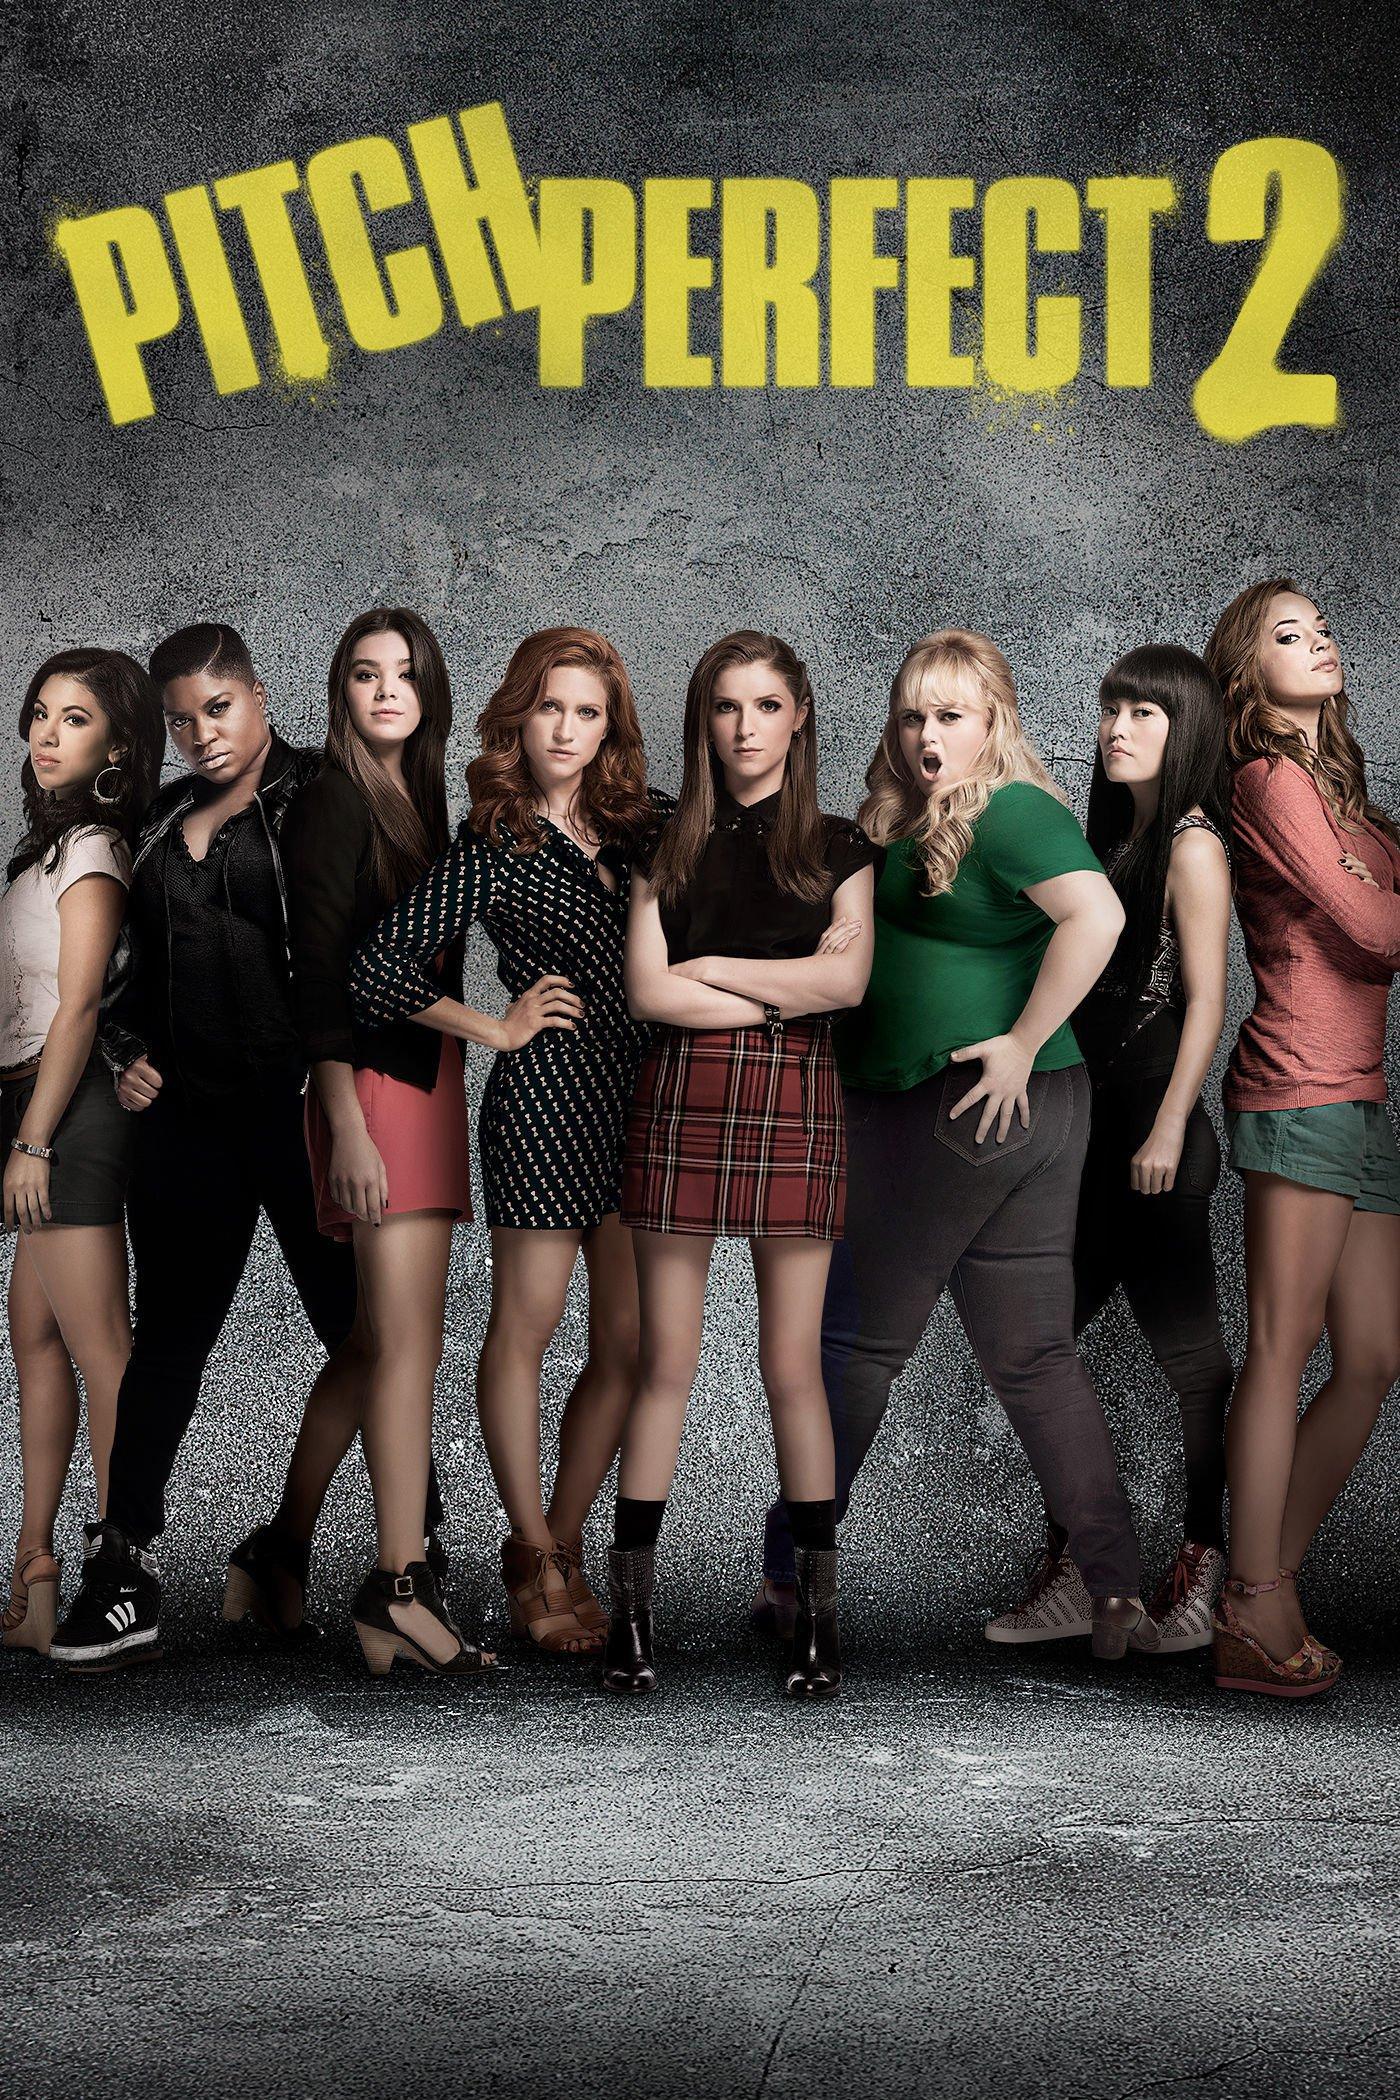 Image pitch perfect 2 posterg pitch perfect wiki fandom pitch perfect 2 posterg voltagebd Choice Image